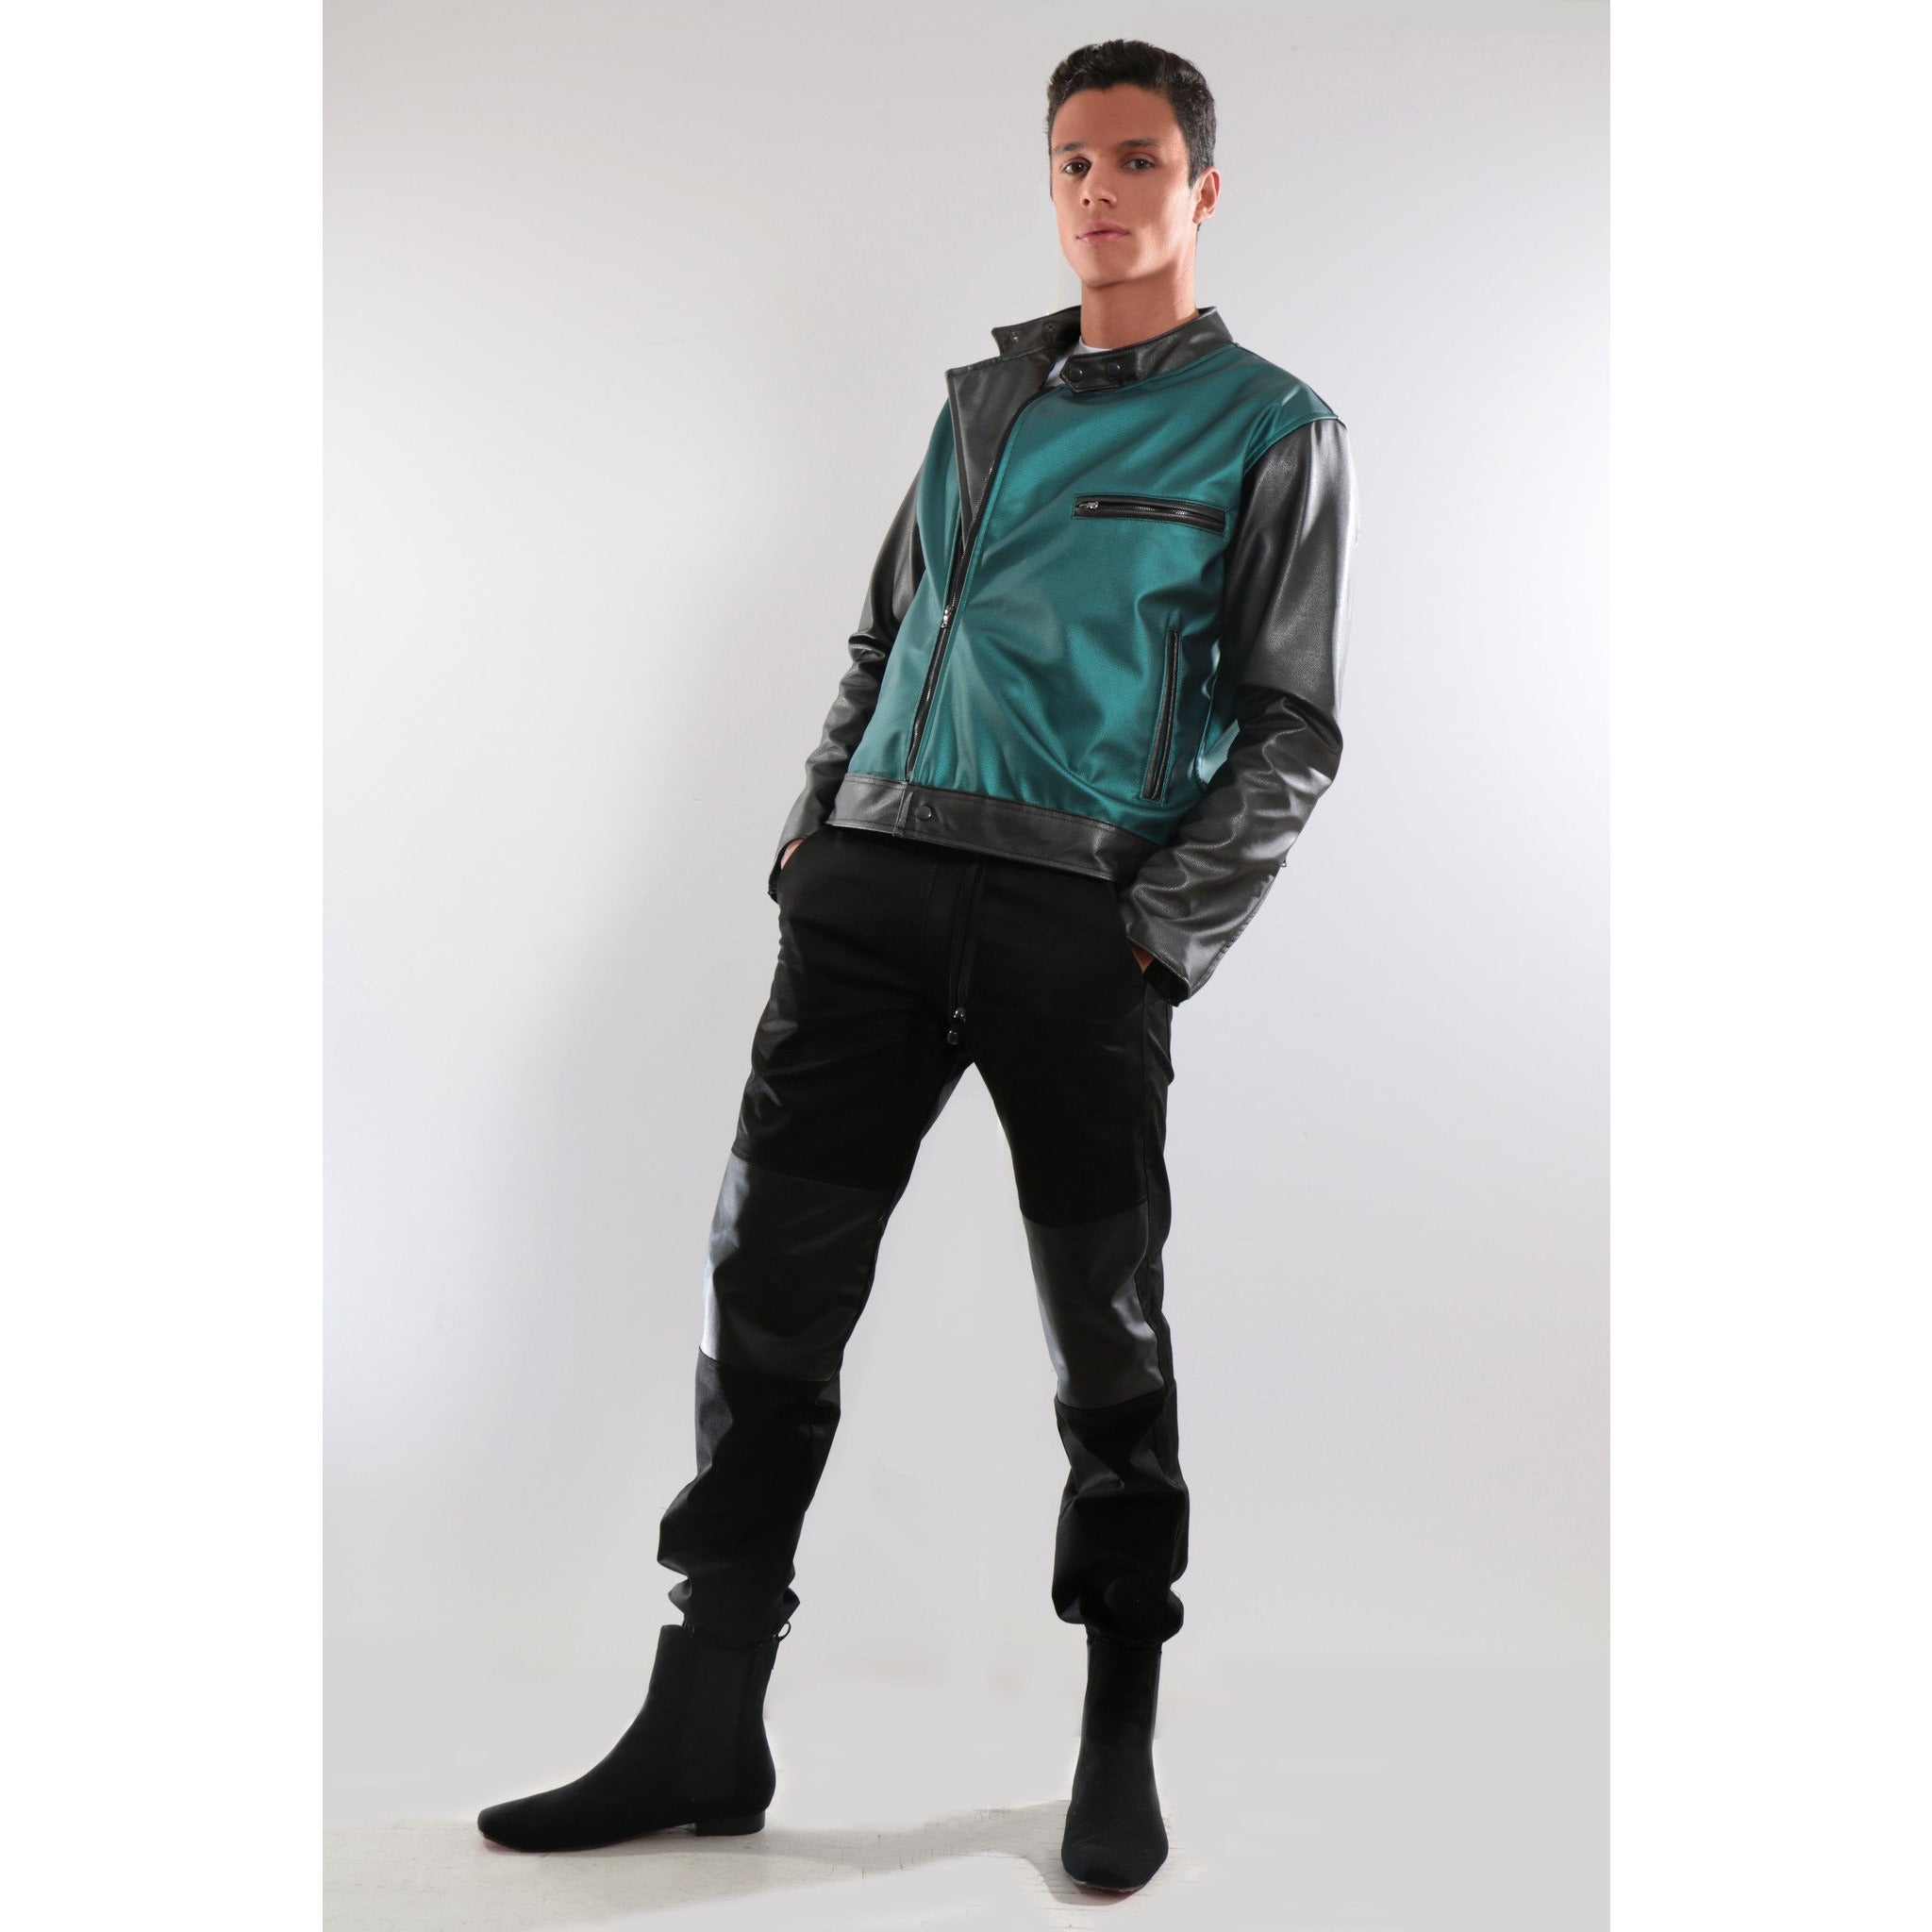 Green and black Synthetic leather Jacket